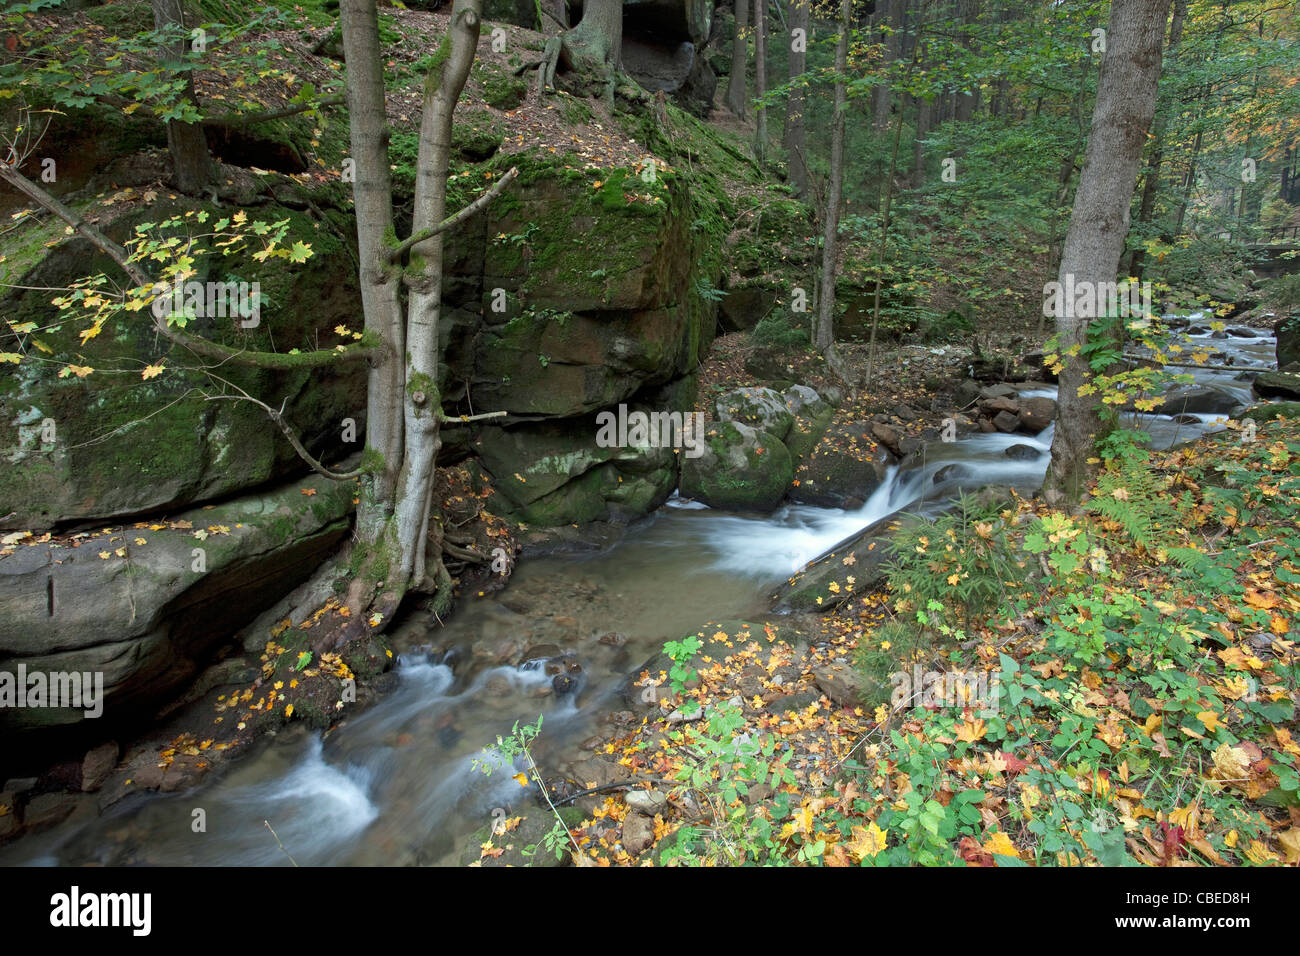 The stream Dorfbach in the Kirnitzsch Valley. Elbe Sandstone Mountains, Saxony, Germany. - Stock Image